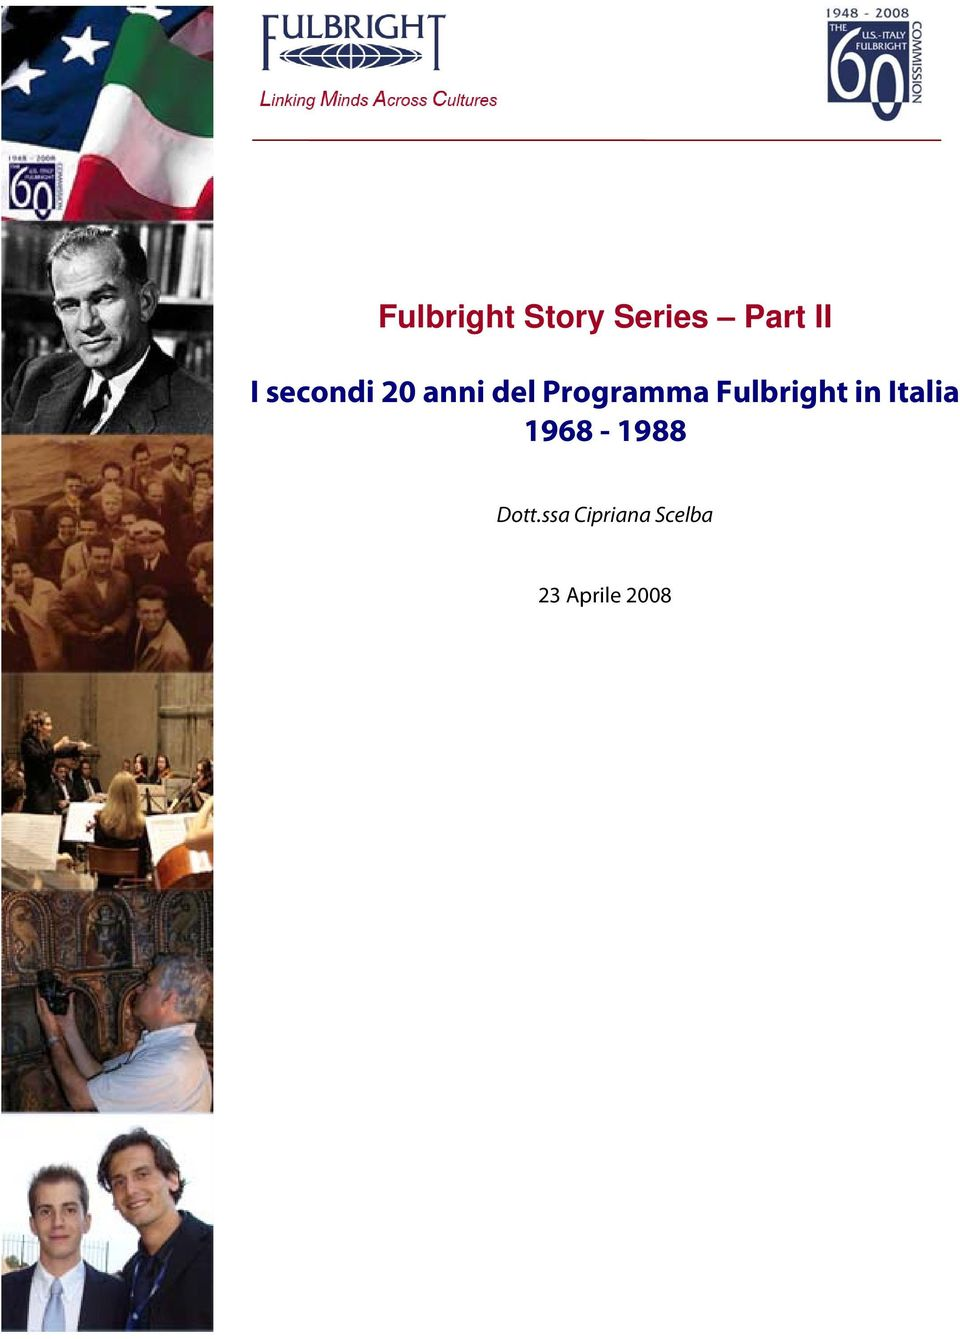 Fulbright in Italia 1968-1988